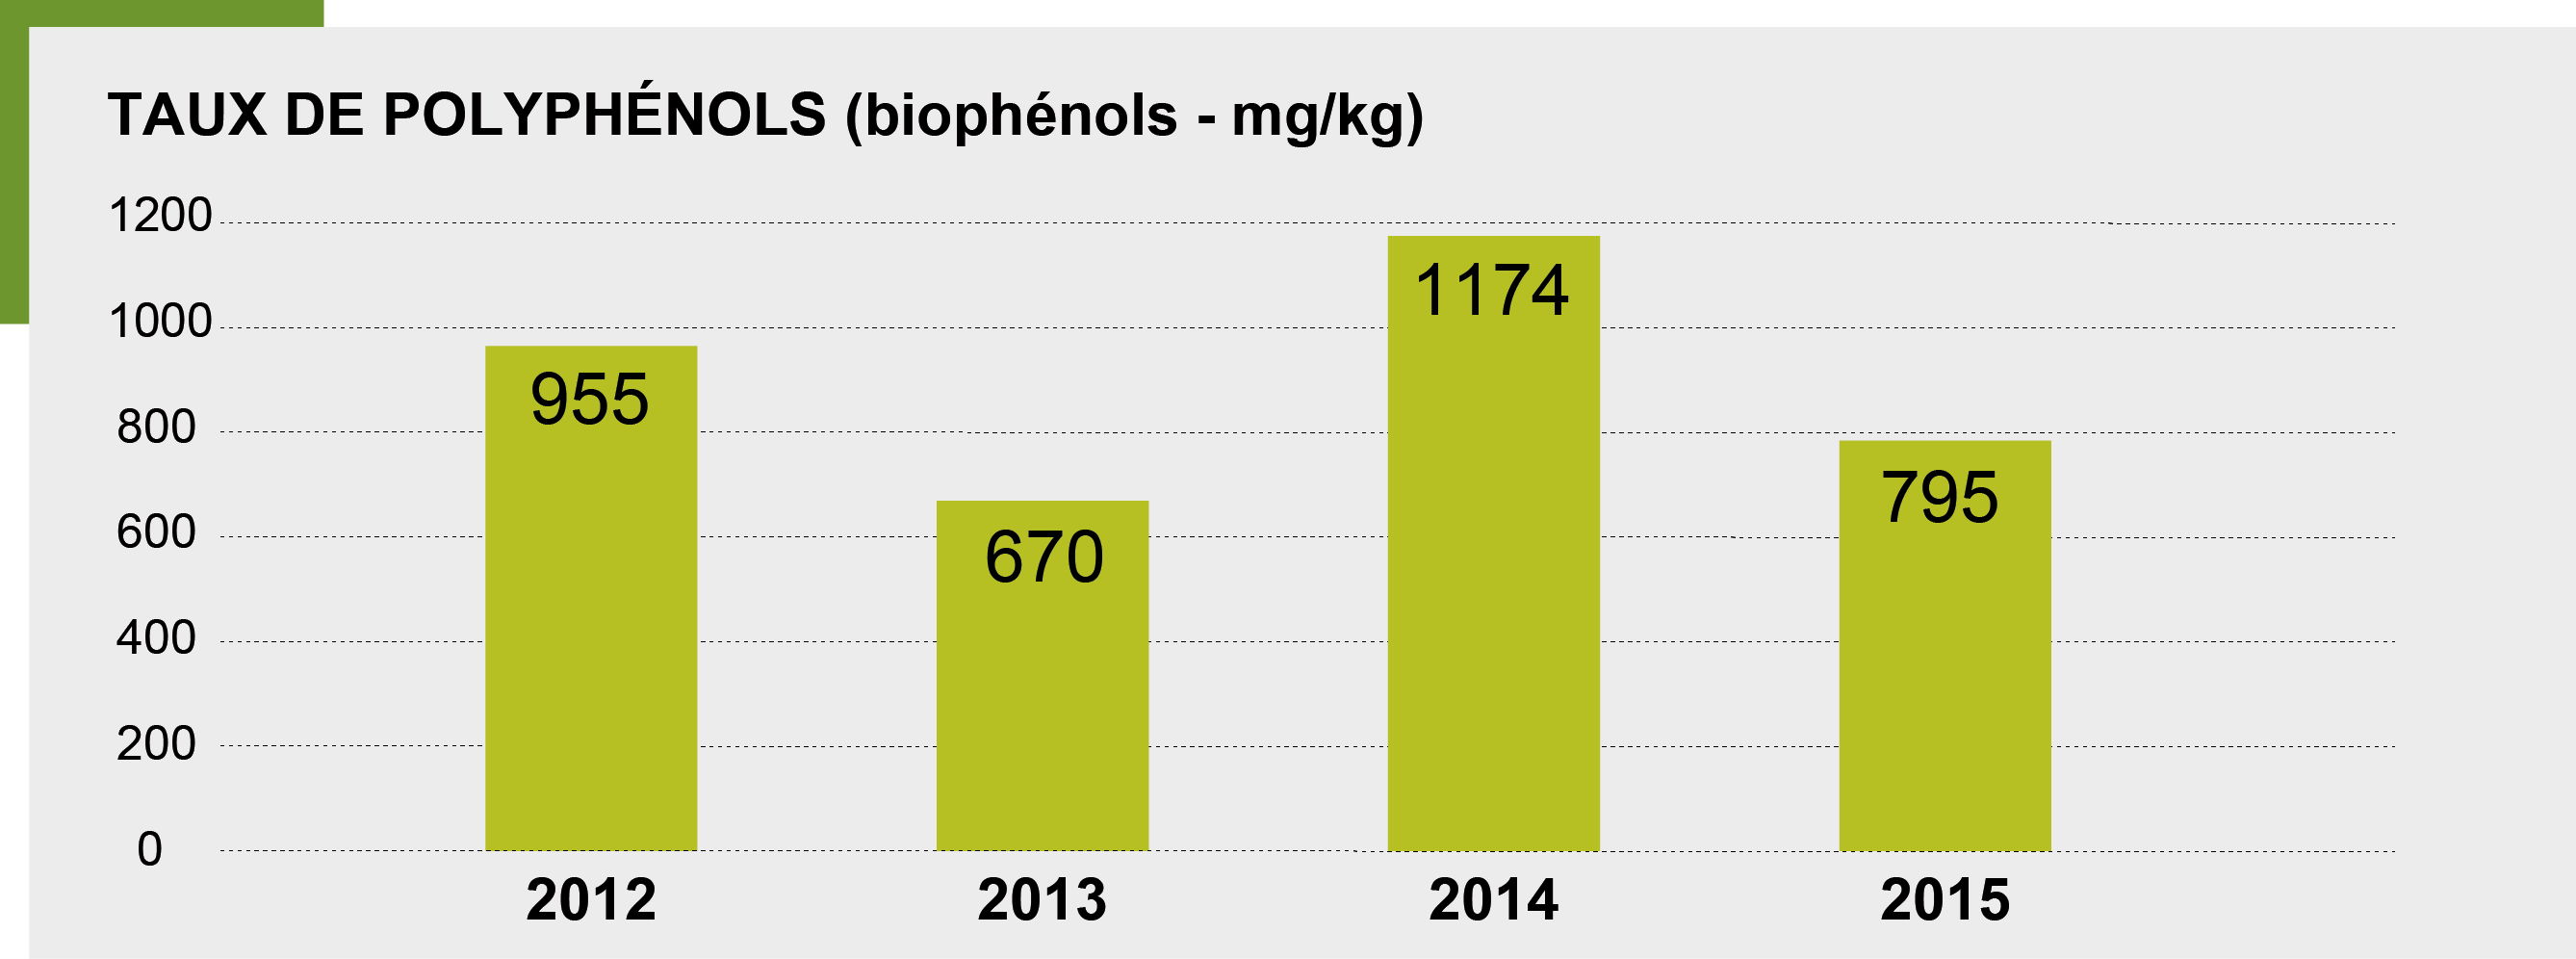 Analyses chimiques Picholine - 2012 à 2015 Picholine Level of Polyphenols - 2012 to 2015